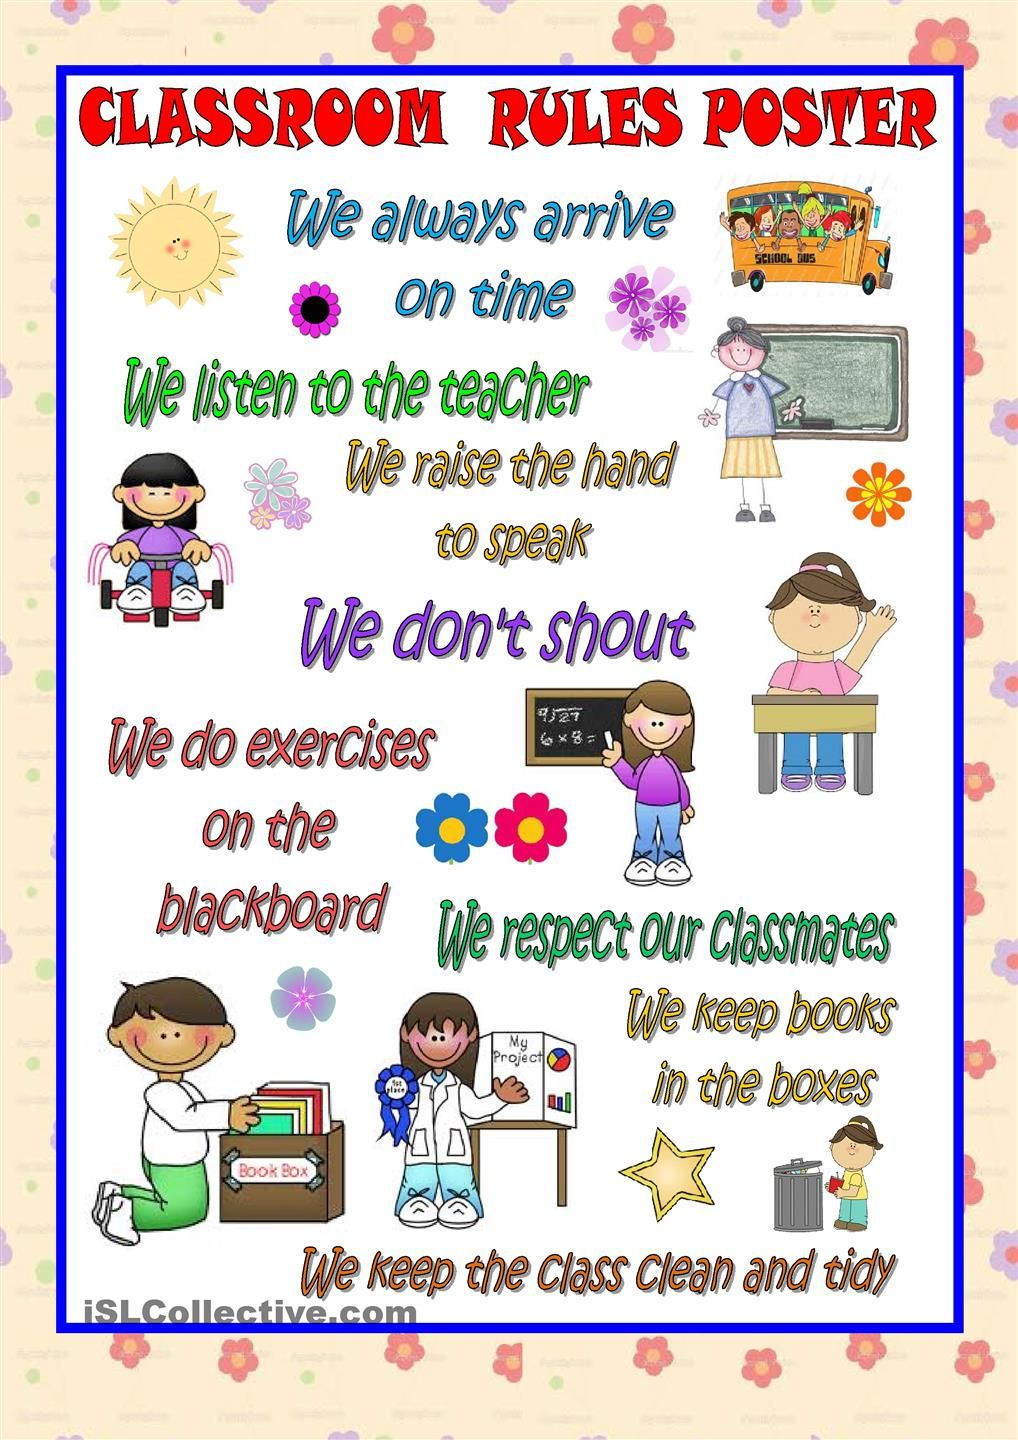 5th grade school rules clipart clipart images gallery for.